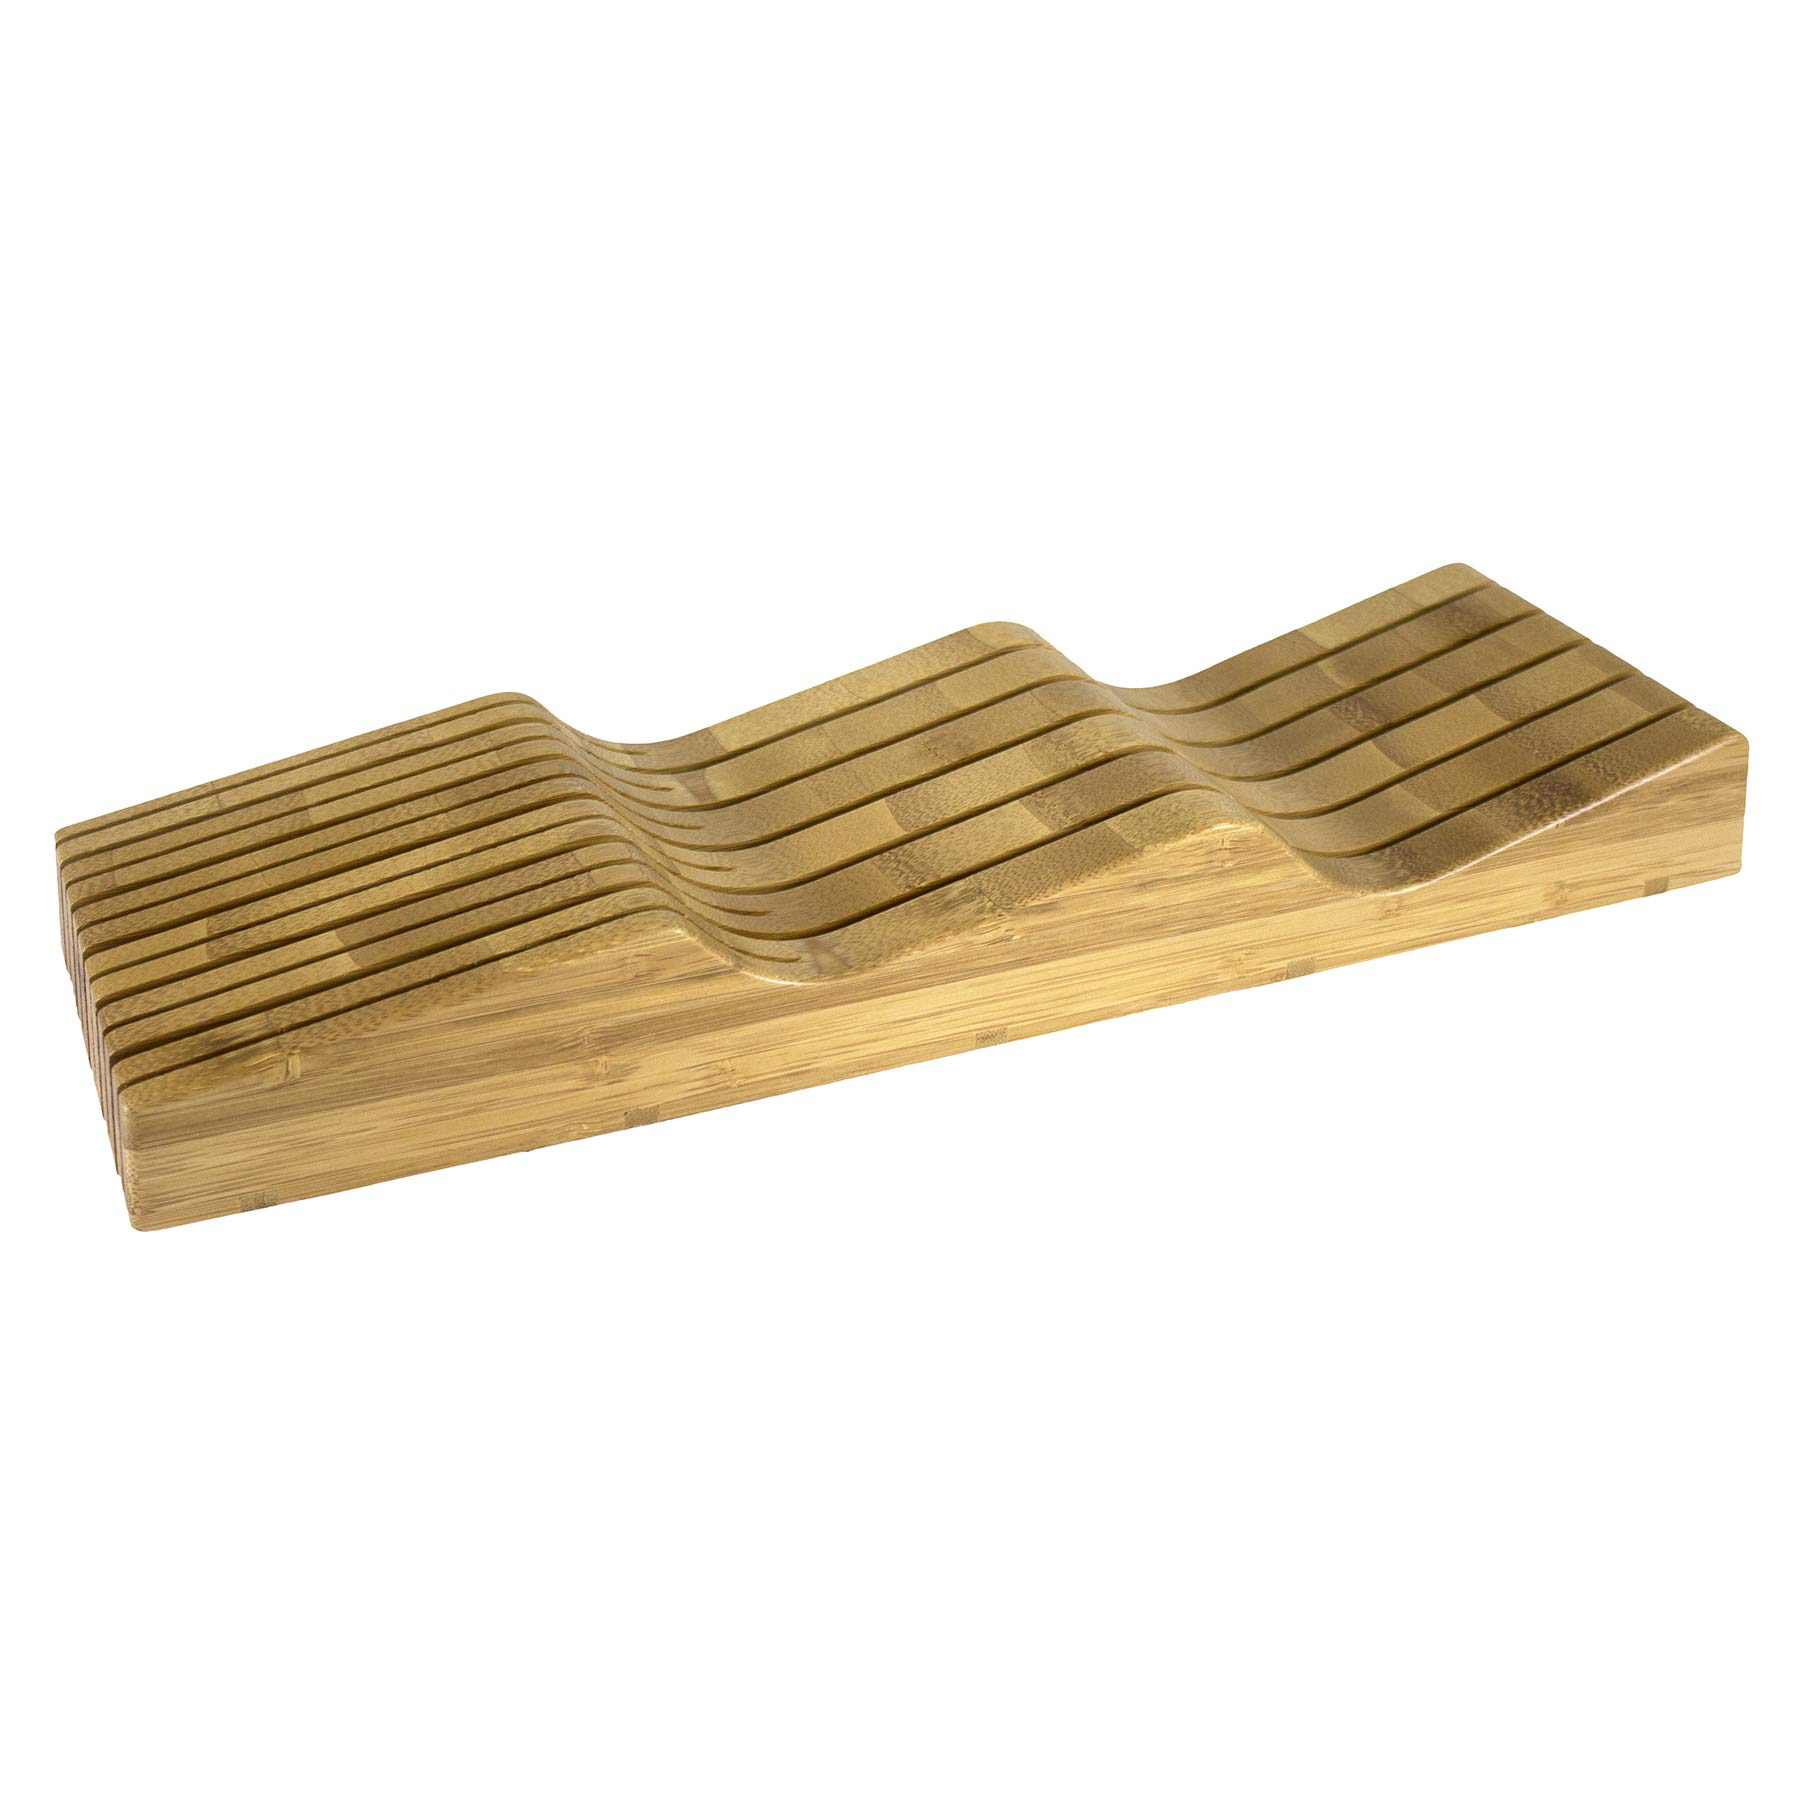 Totally Bamboo In-Drawer Knife Block, Holds Up to 16 Knives